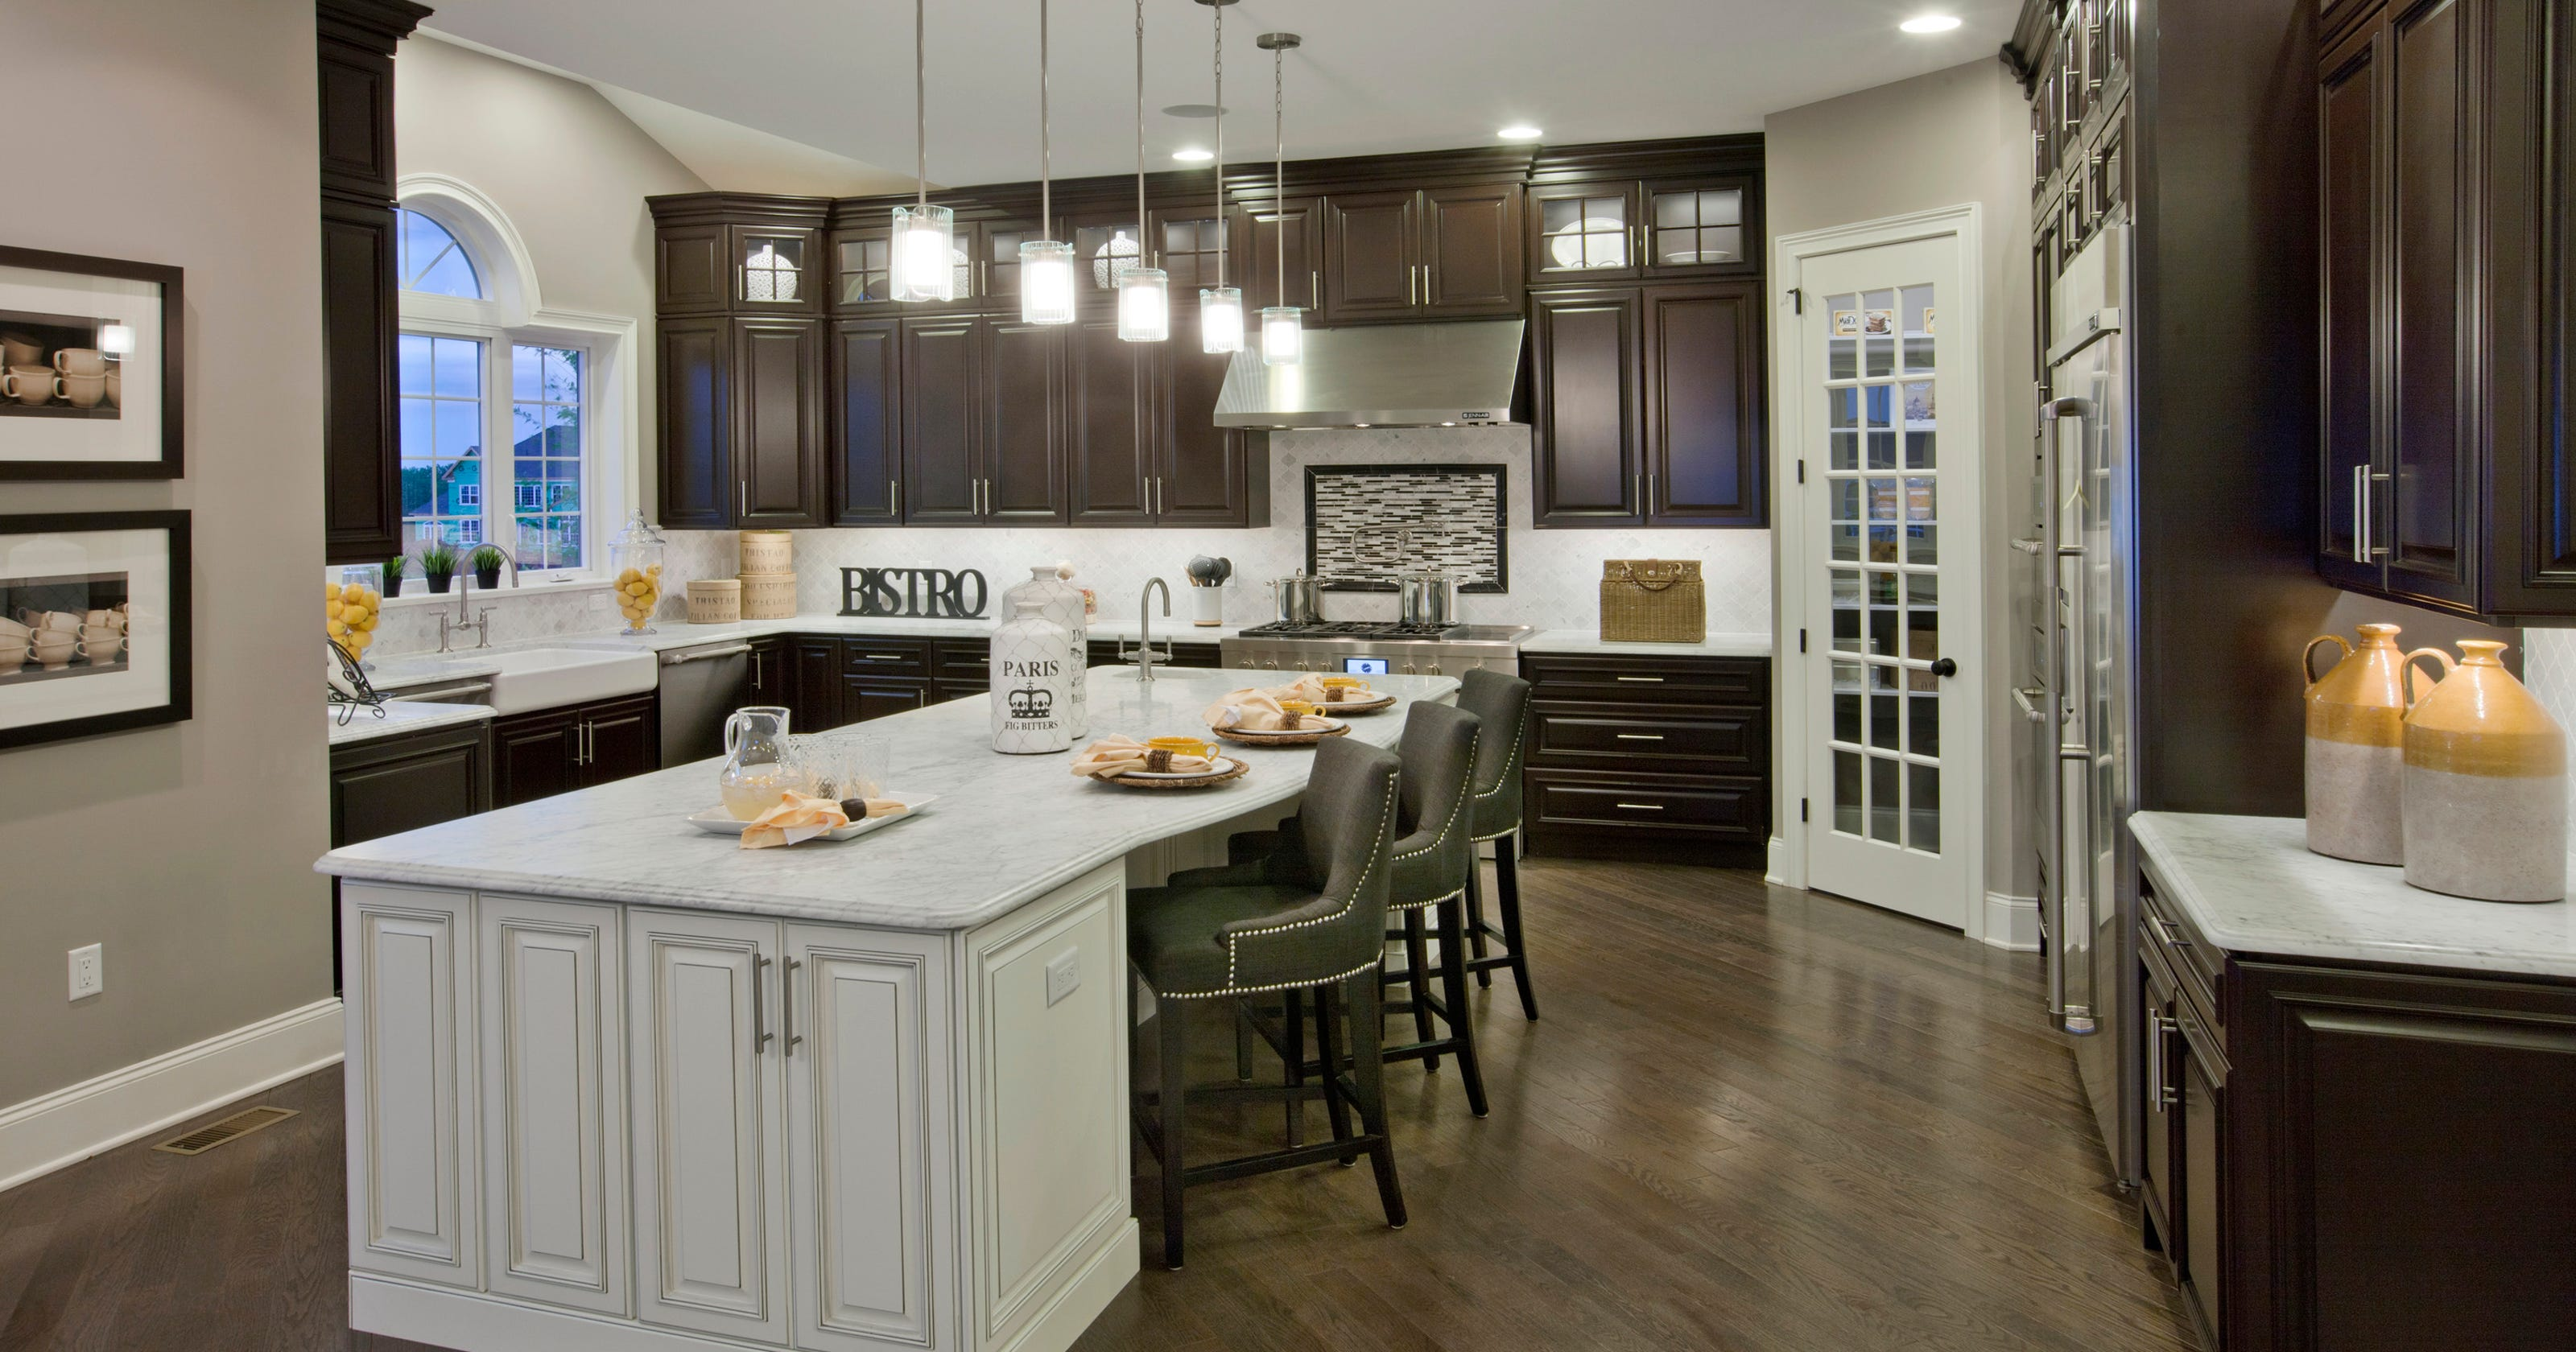 Toll Brothers Offers Dream Kitchens At No Extra Cost In